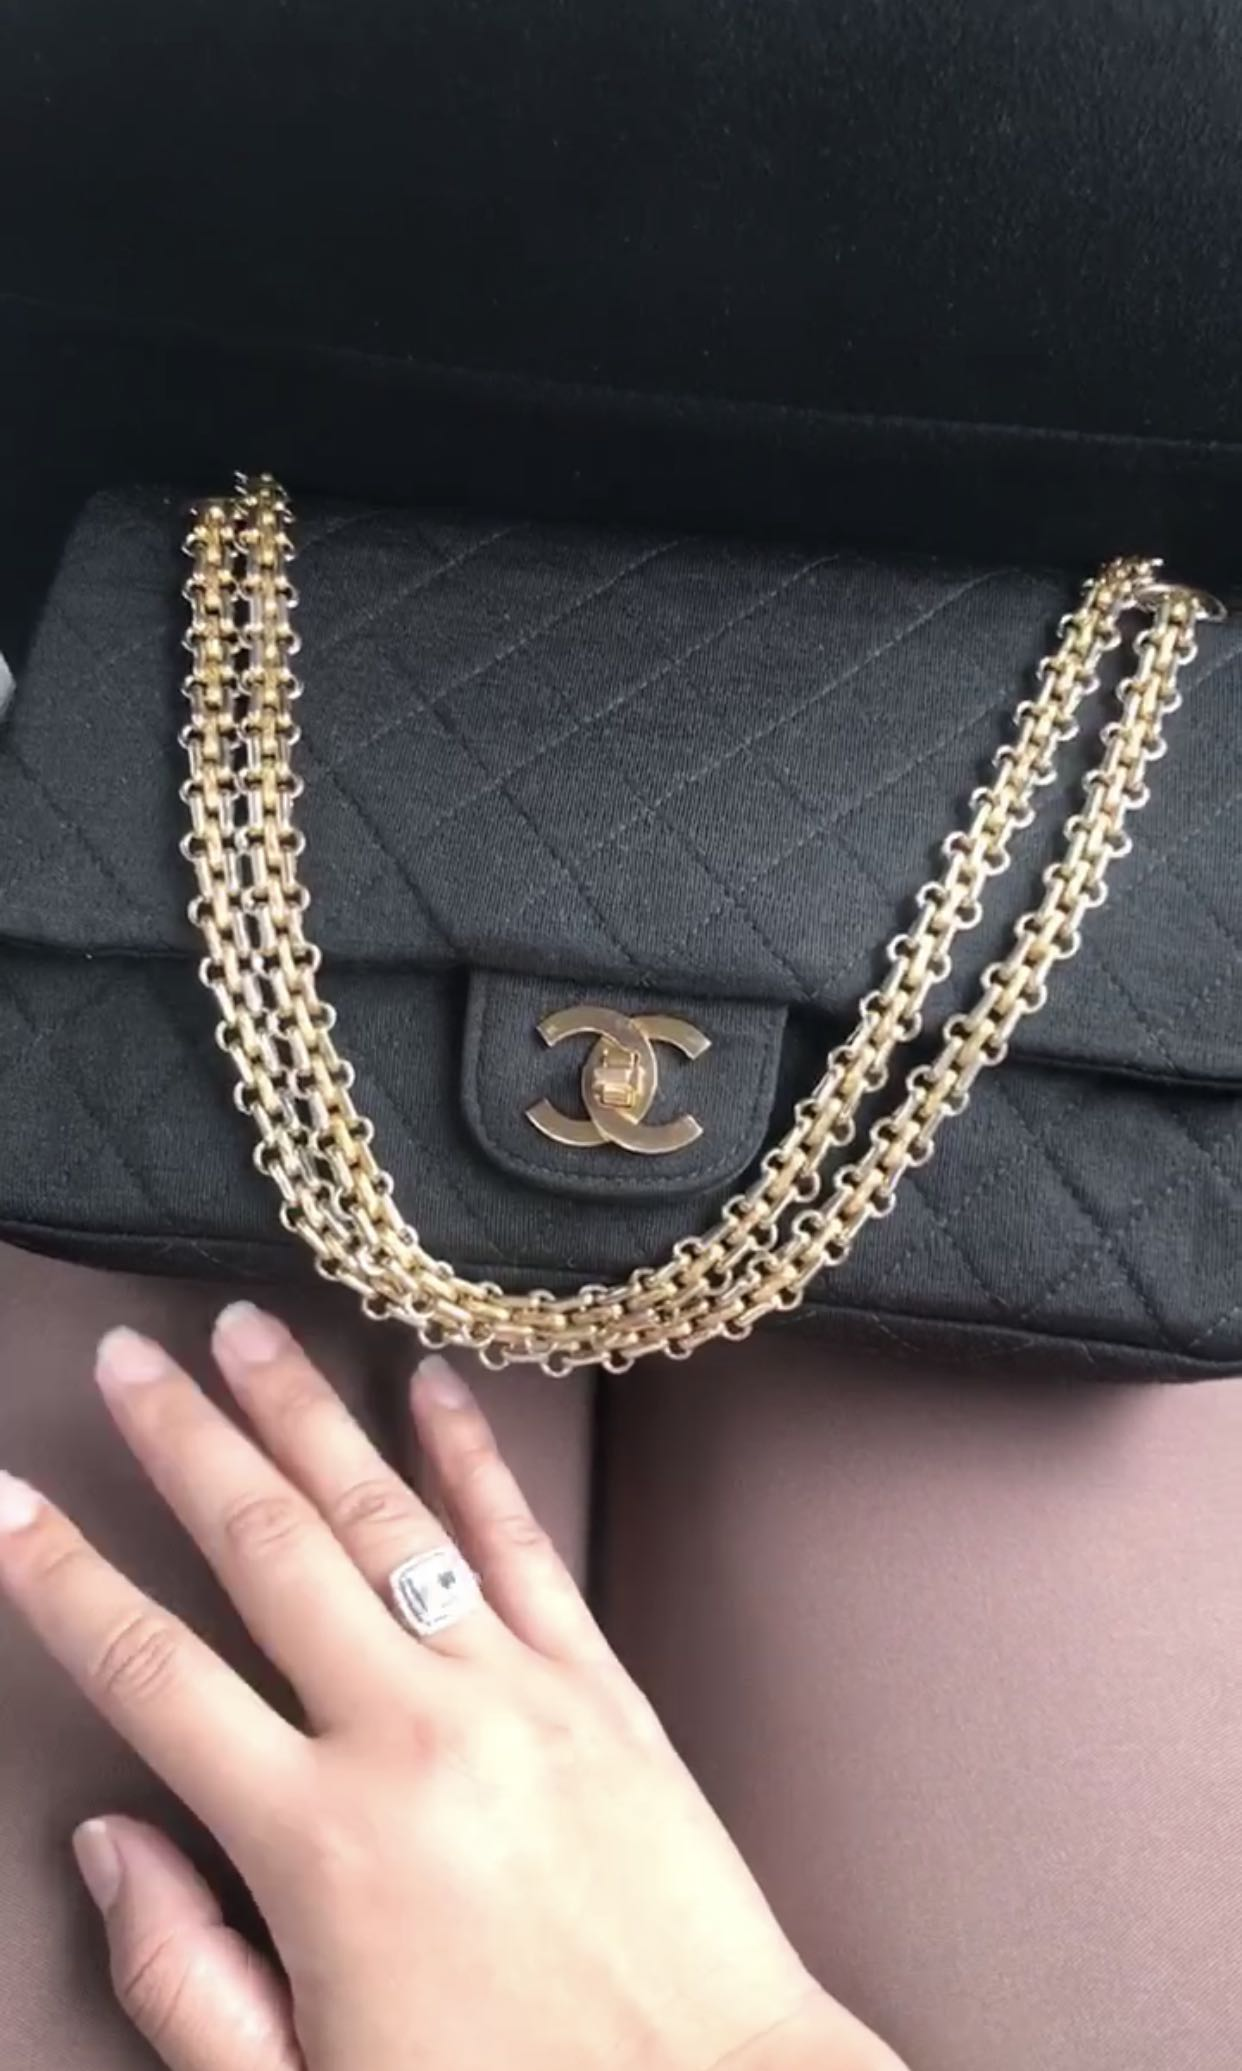 39df78fe1058 Vintage Chanel classic black jersey 2.55 bag with double flap and ...